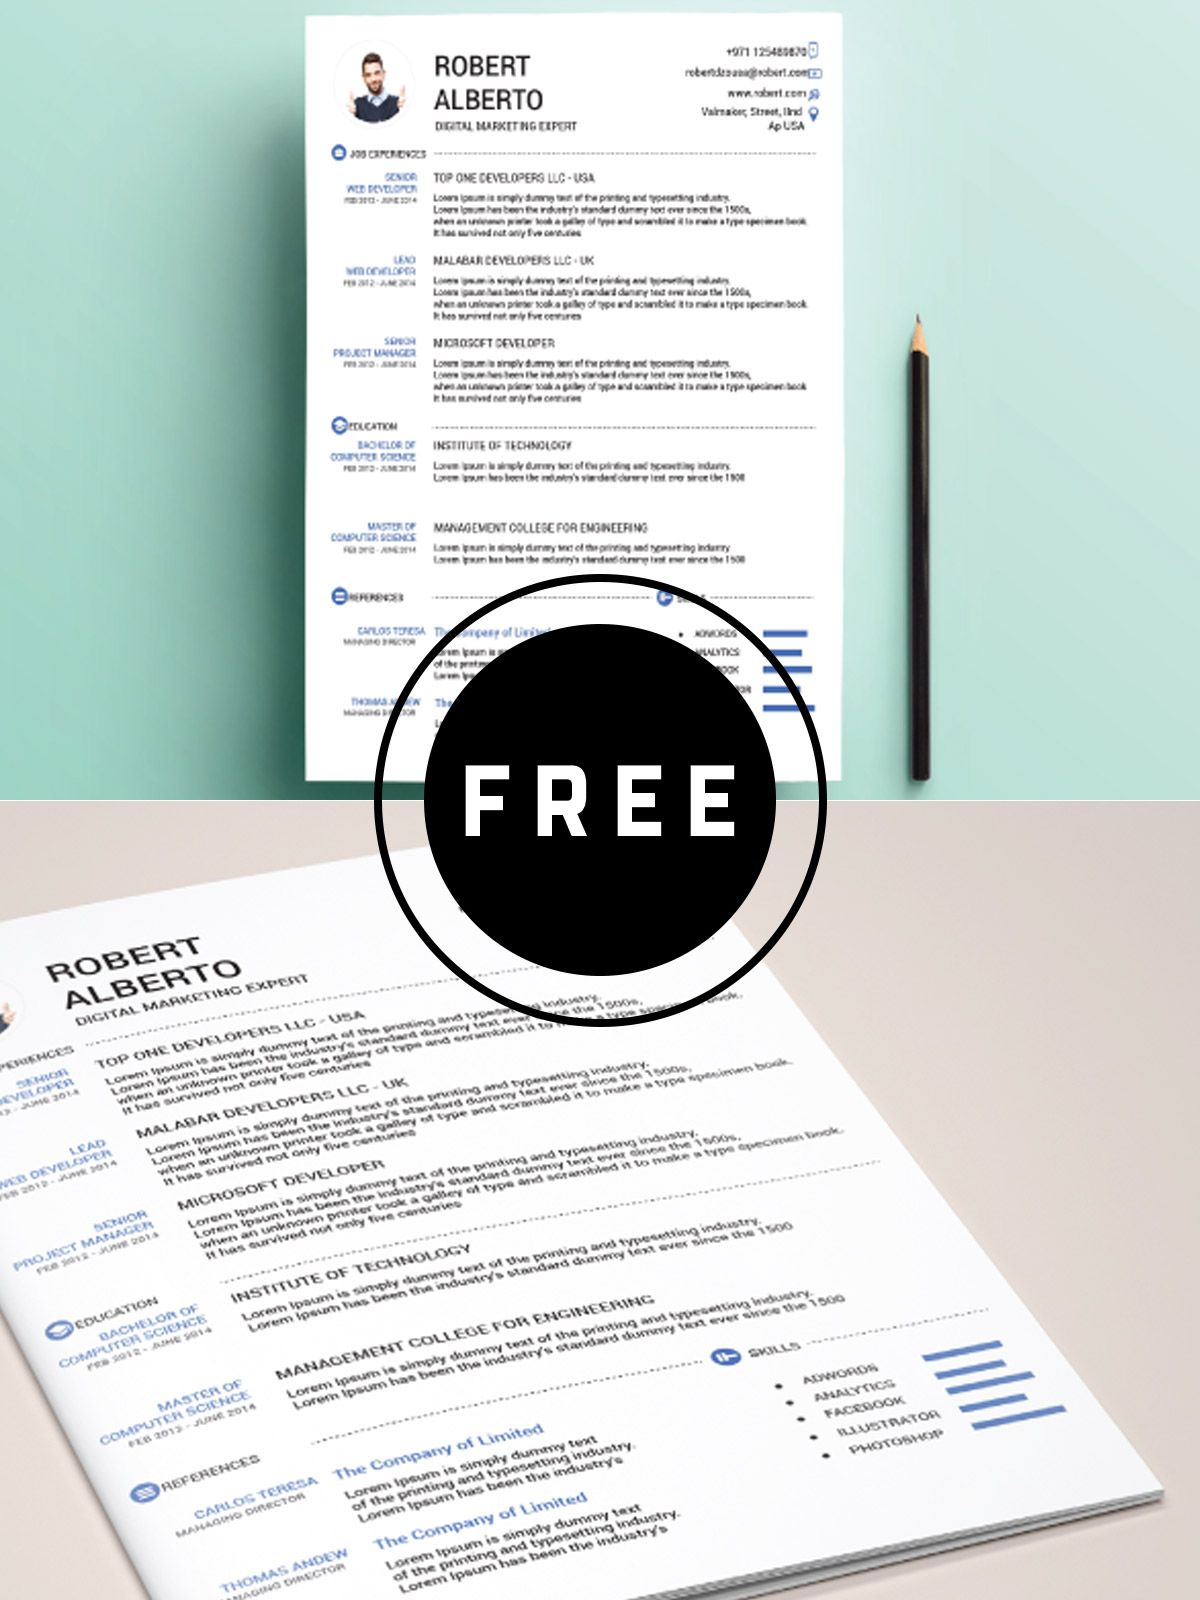 98 Awesome Free Resume Templates For 2019 Free Resume Template Word Resume Template Free Resume Design Template